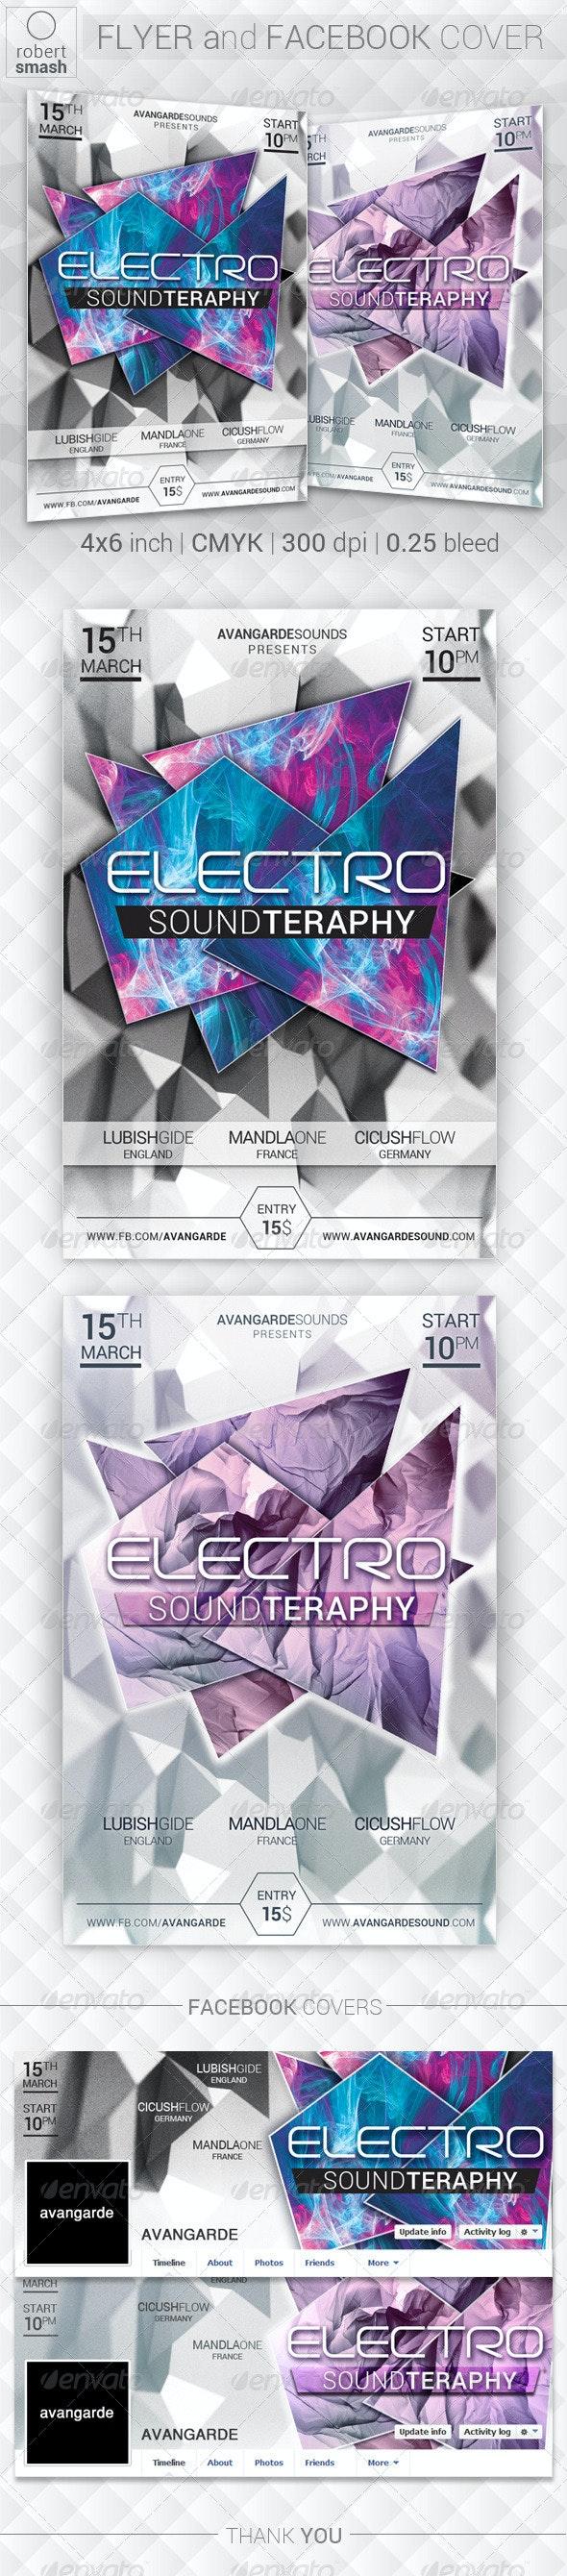 Electro Sound Teraphy Flyer - Clubs & Parties Events